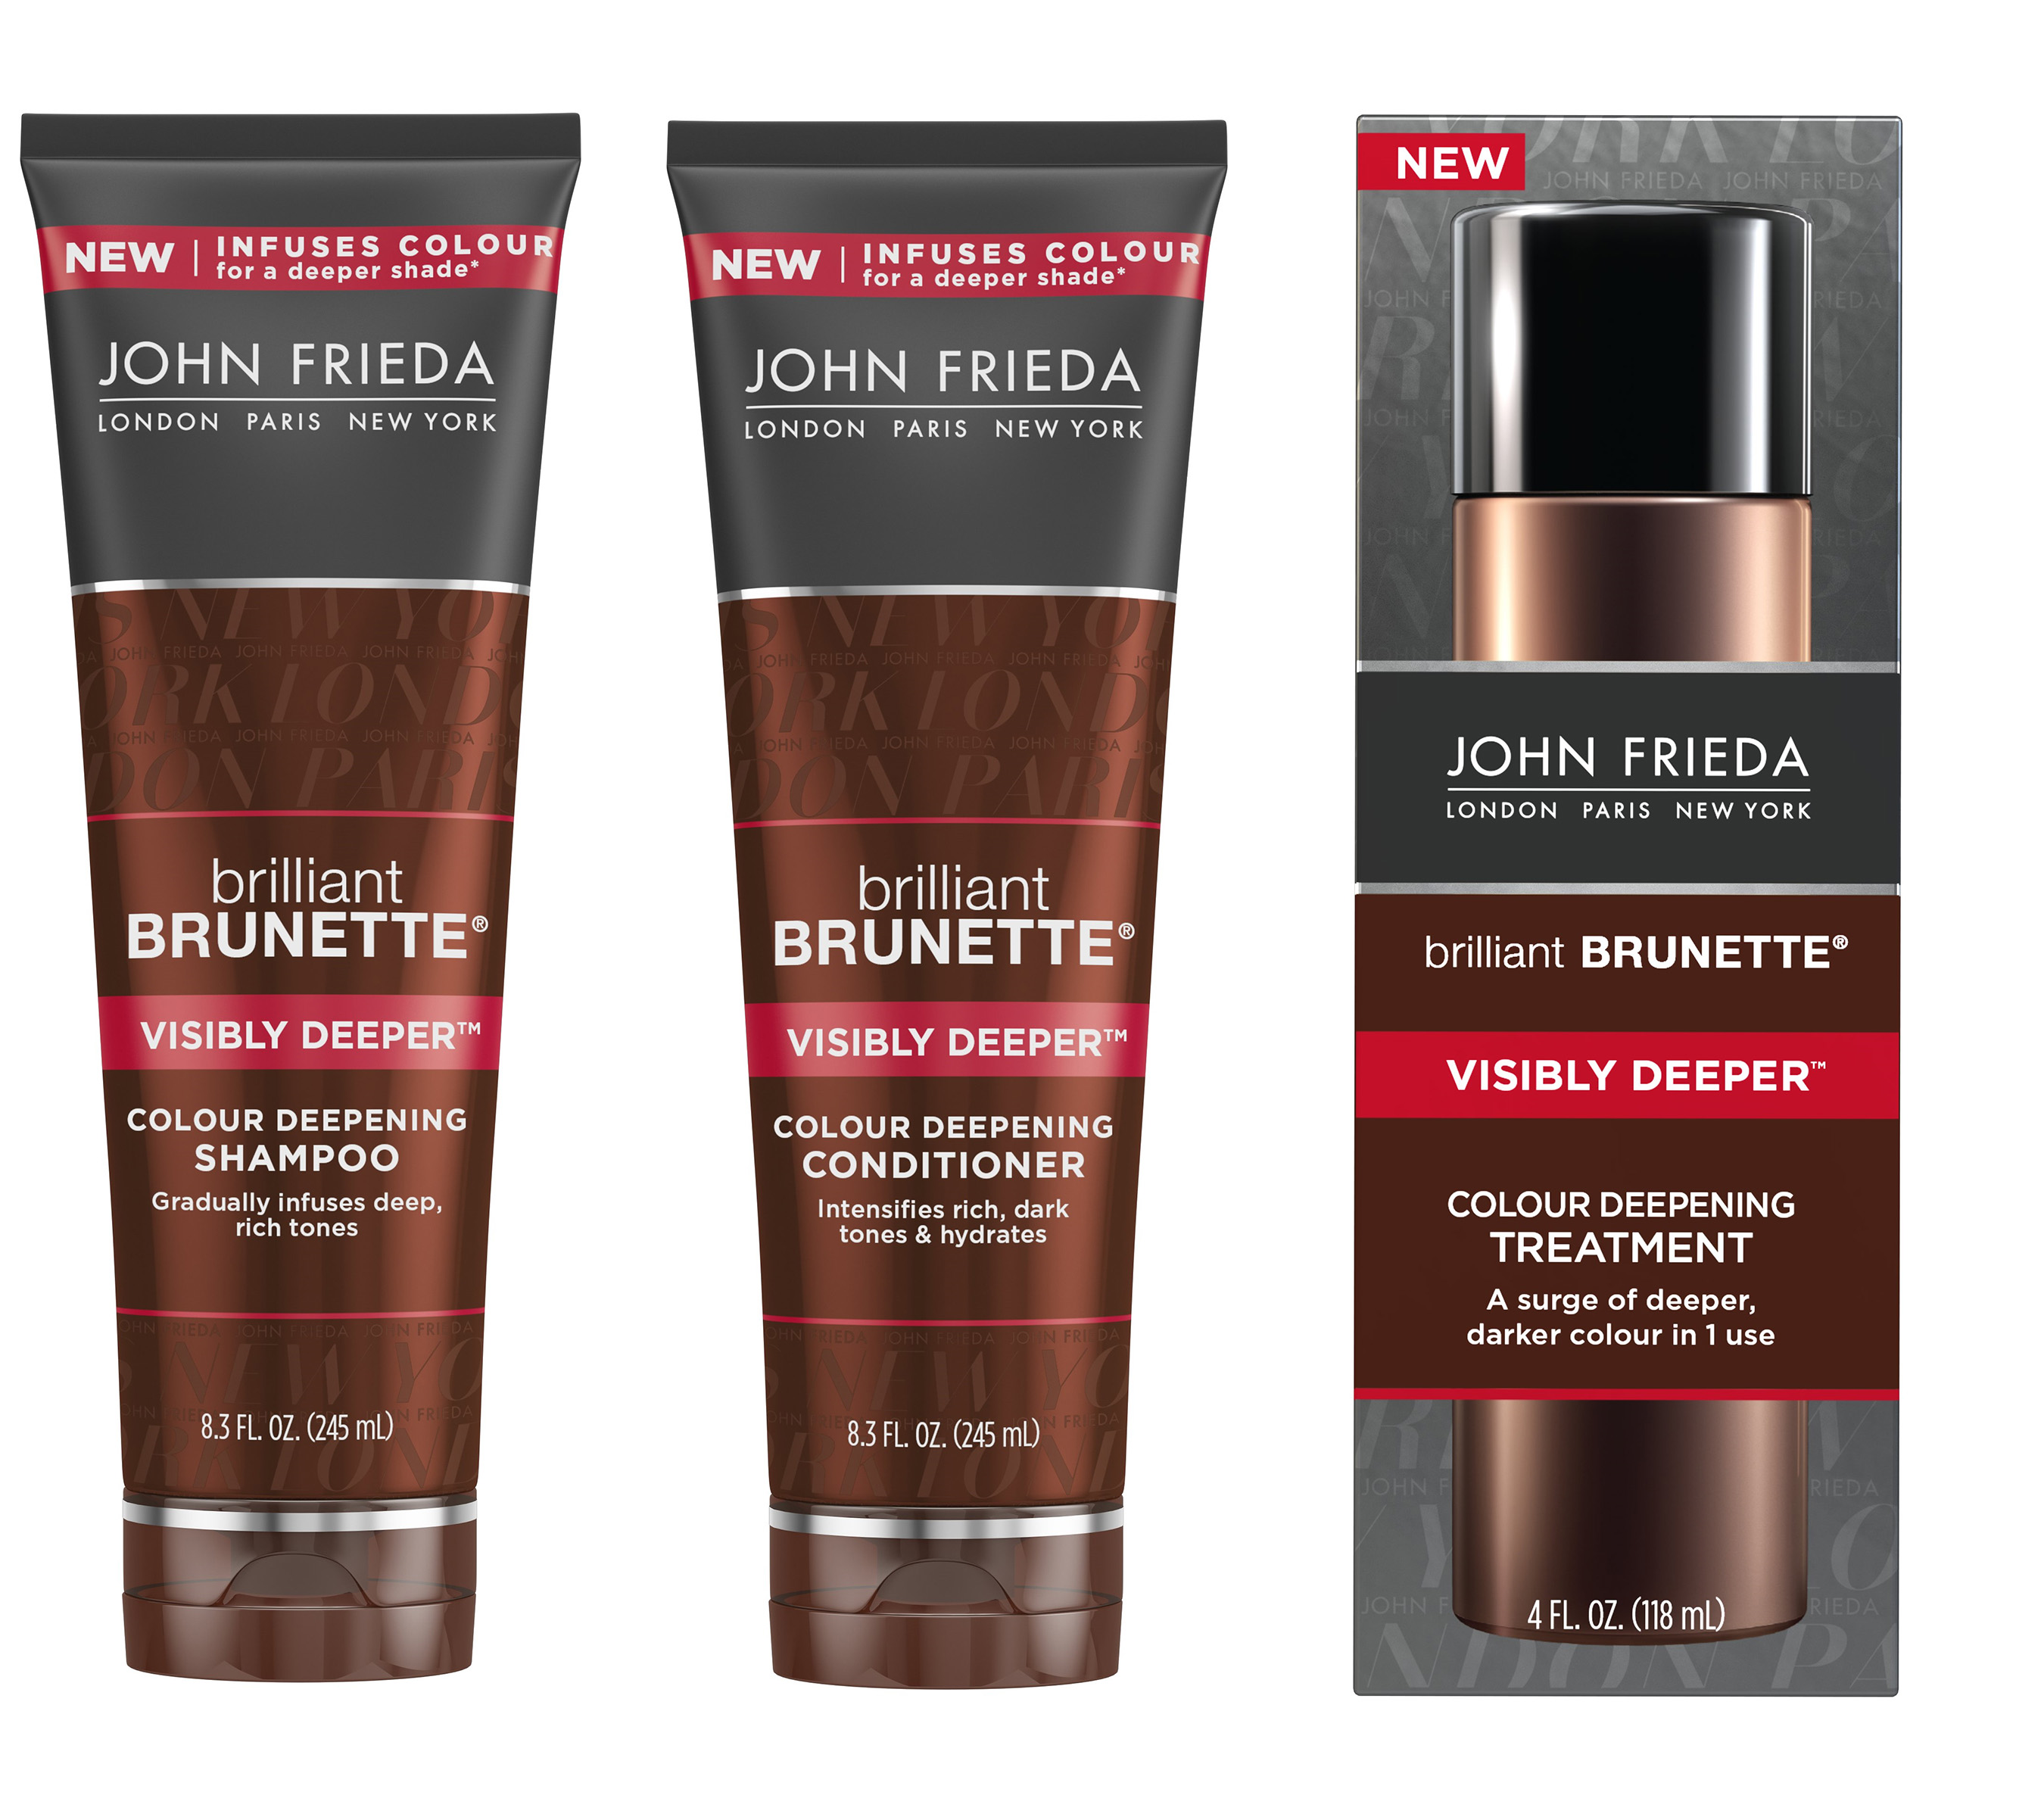 John Frieda Launches New Color Care Lines Latf Usa